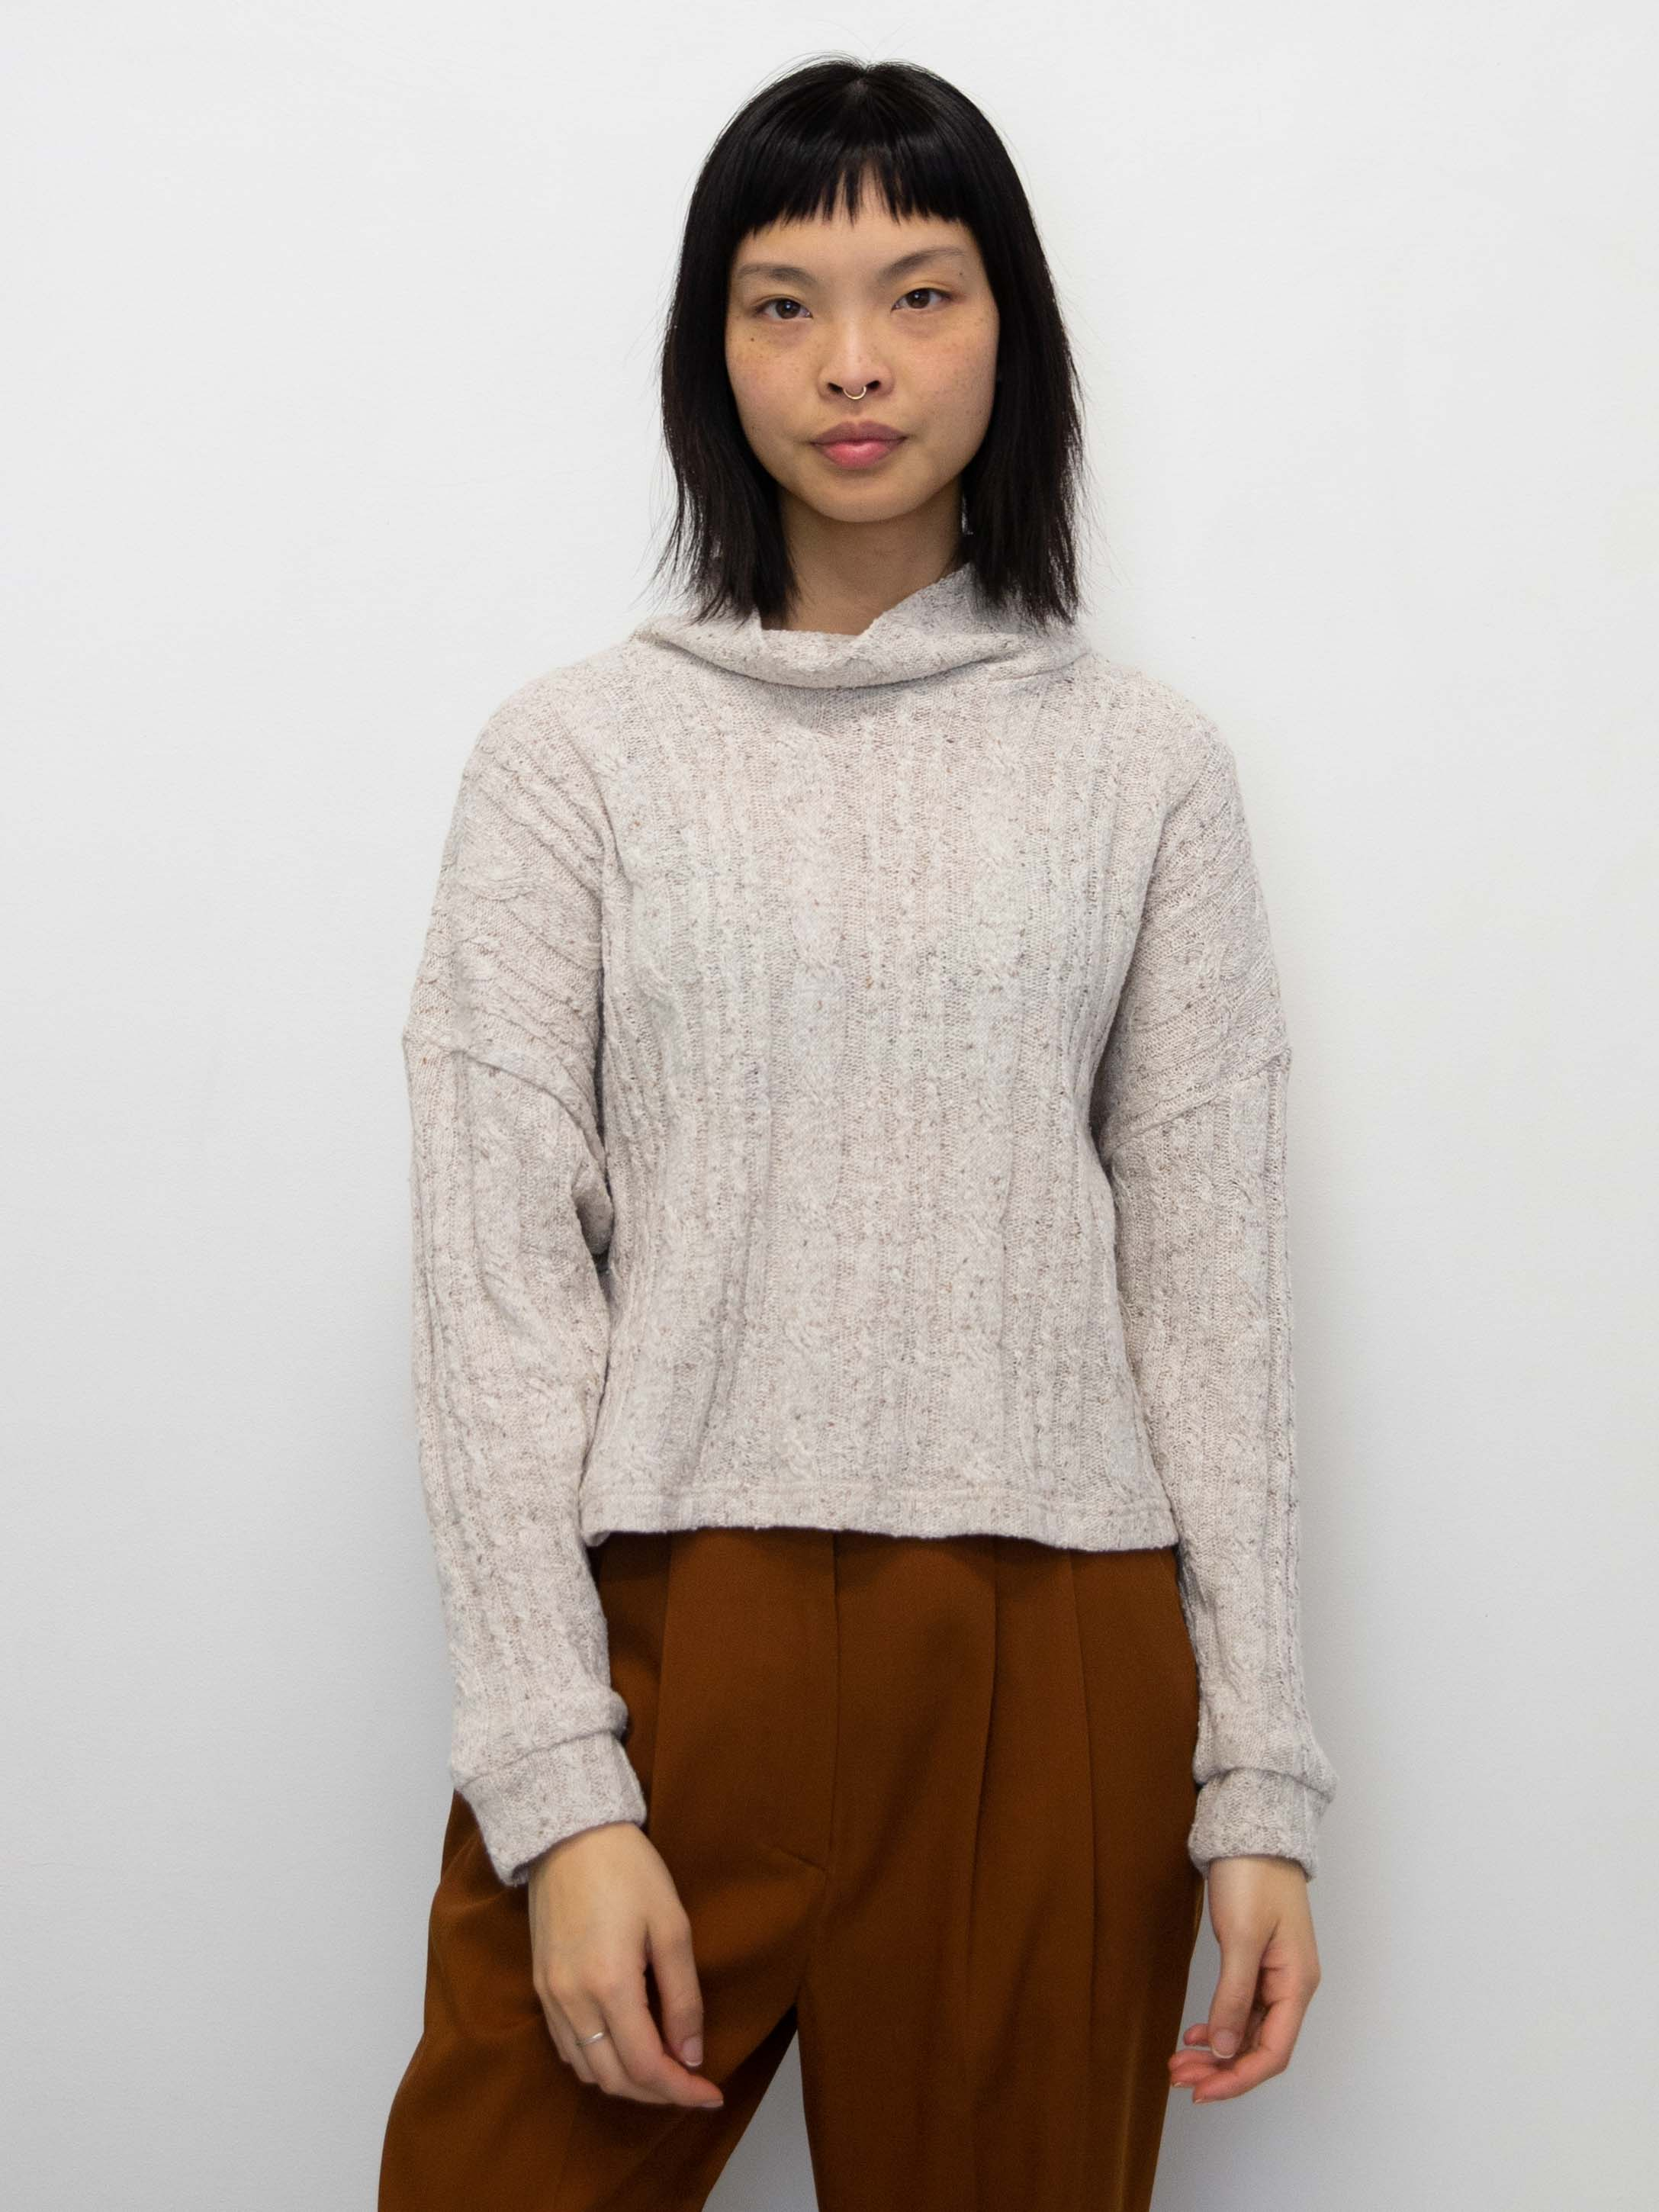 DRESS UP Cable Knit Sweater - Cream